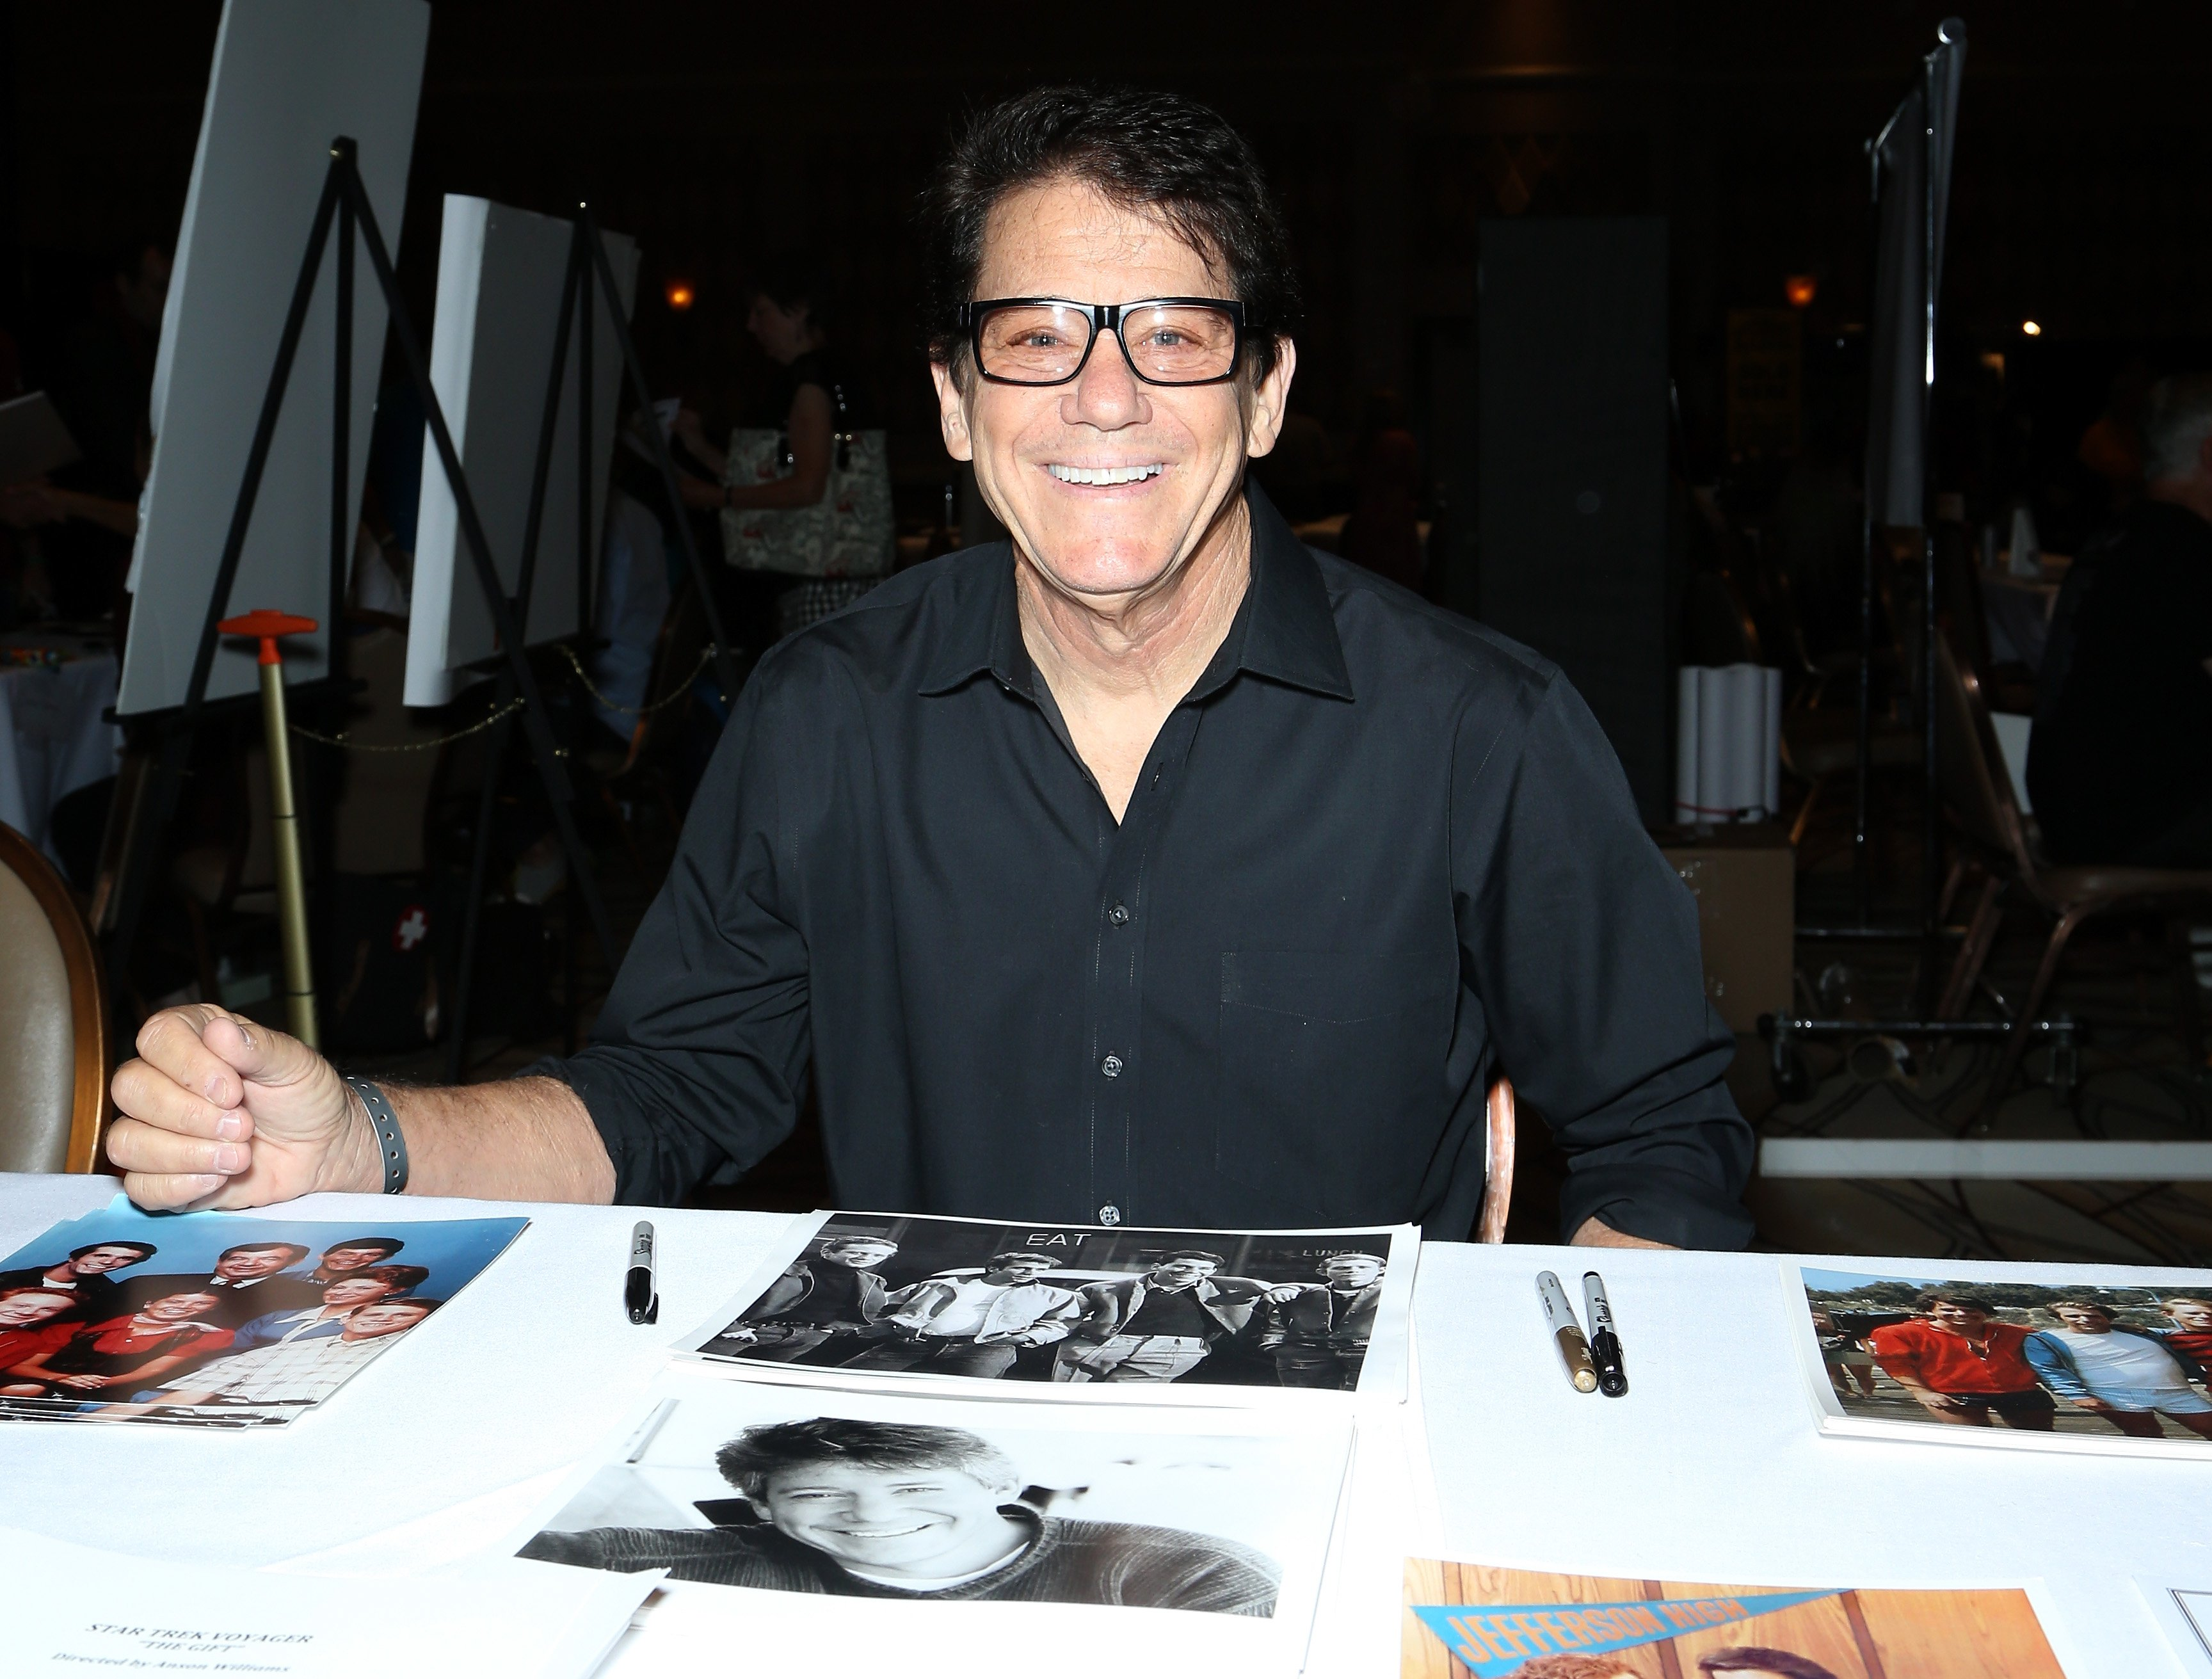 Anson Williams attends the 14th annual official Star Trek convention on August 6, 2015   Photo: Getty Images